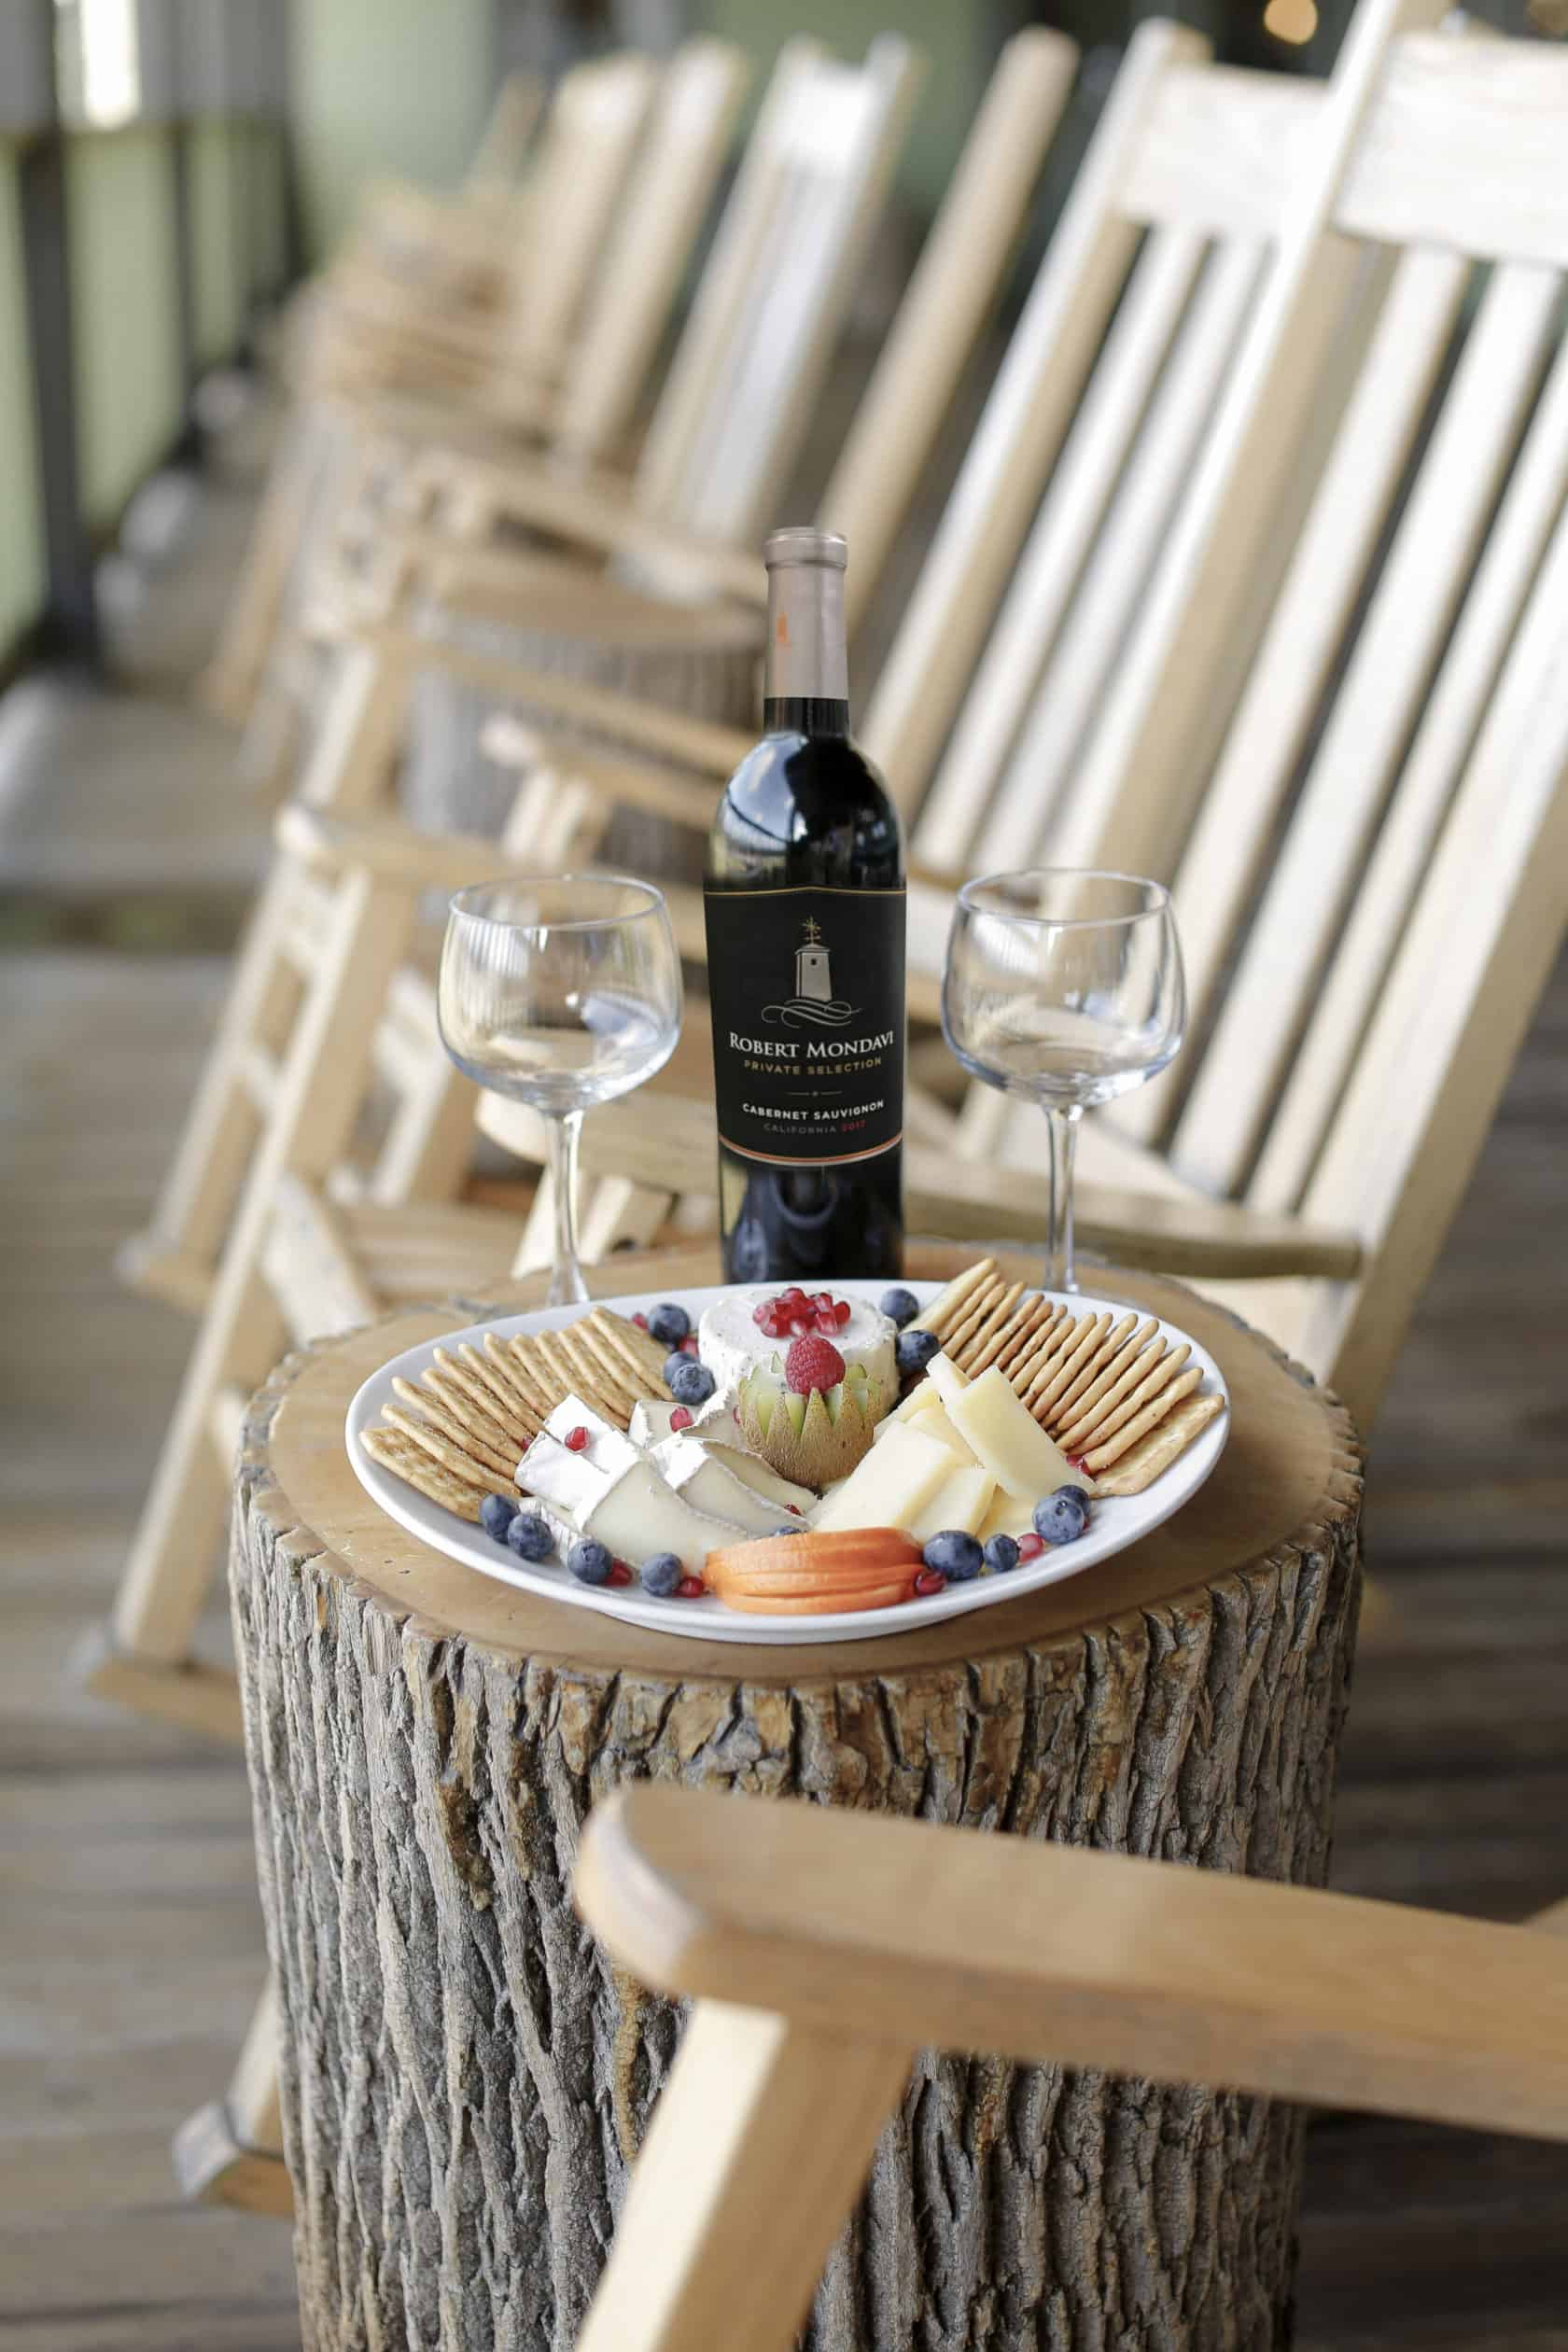 wine and cheese plate by rocking chairs